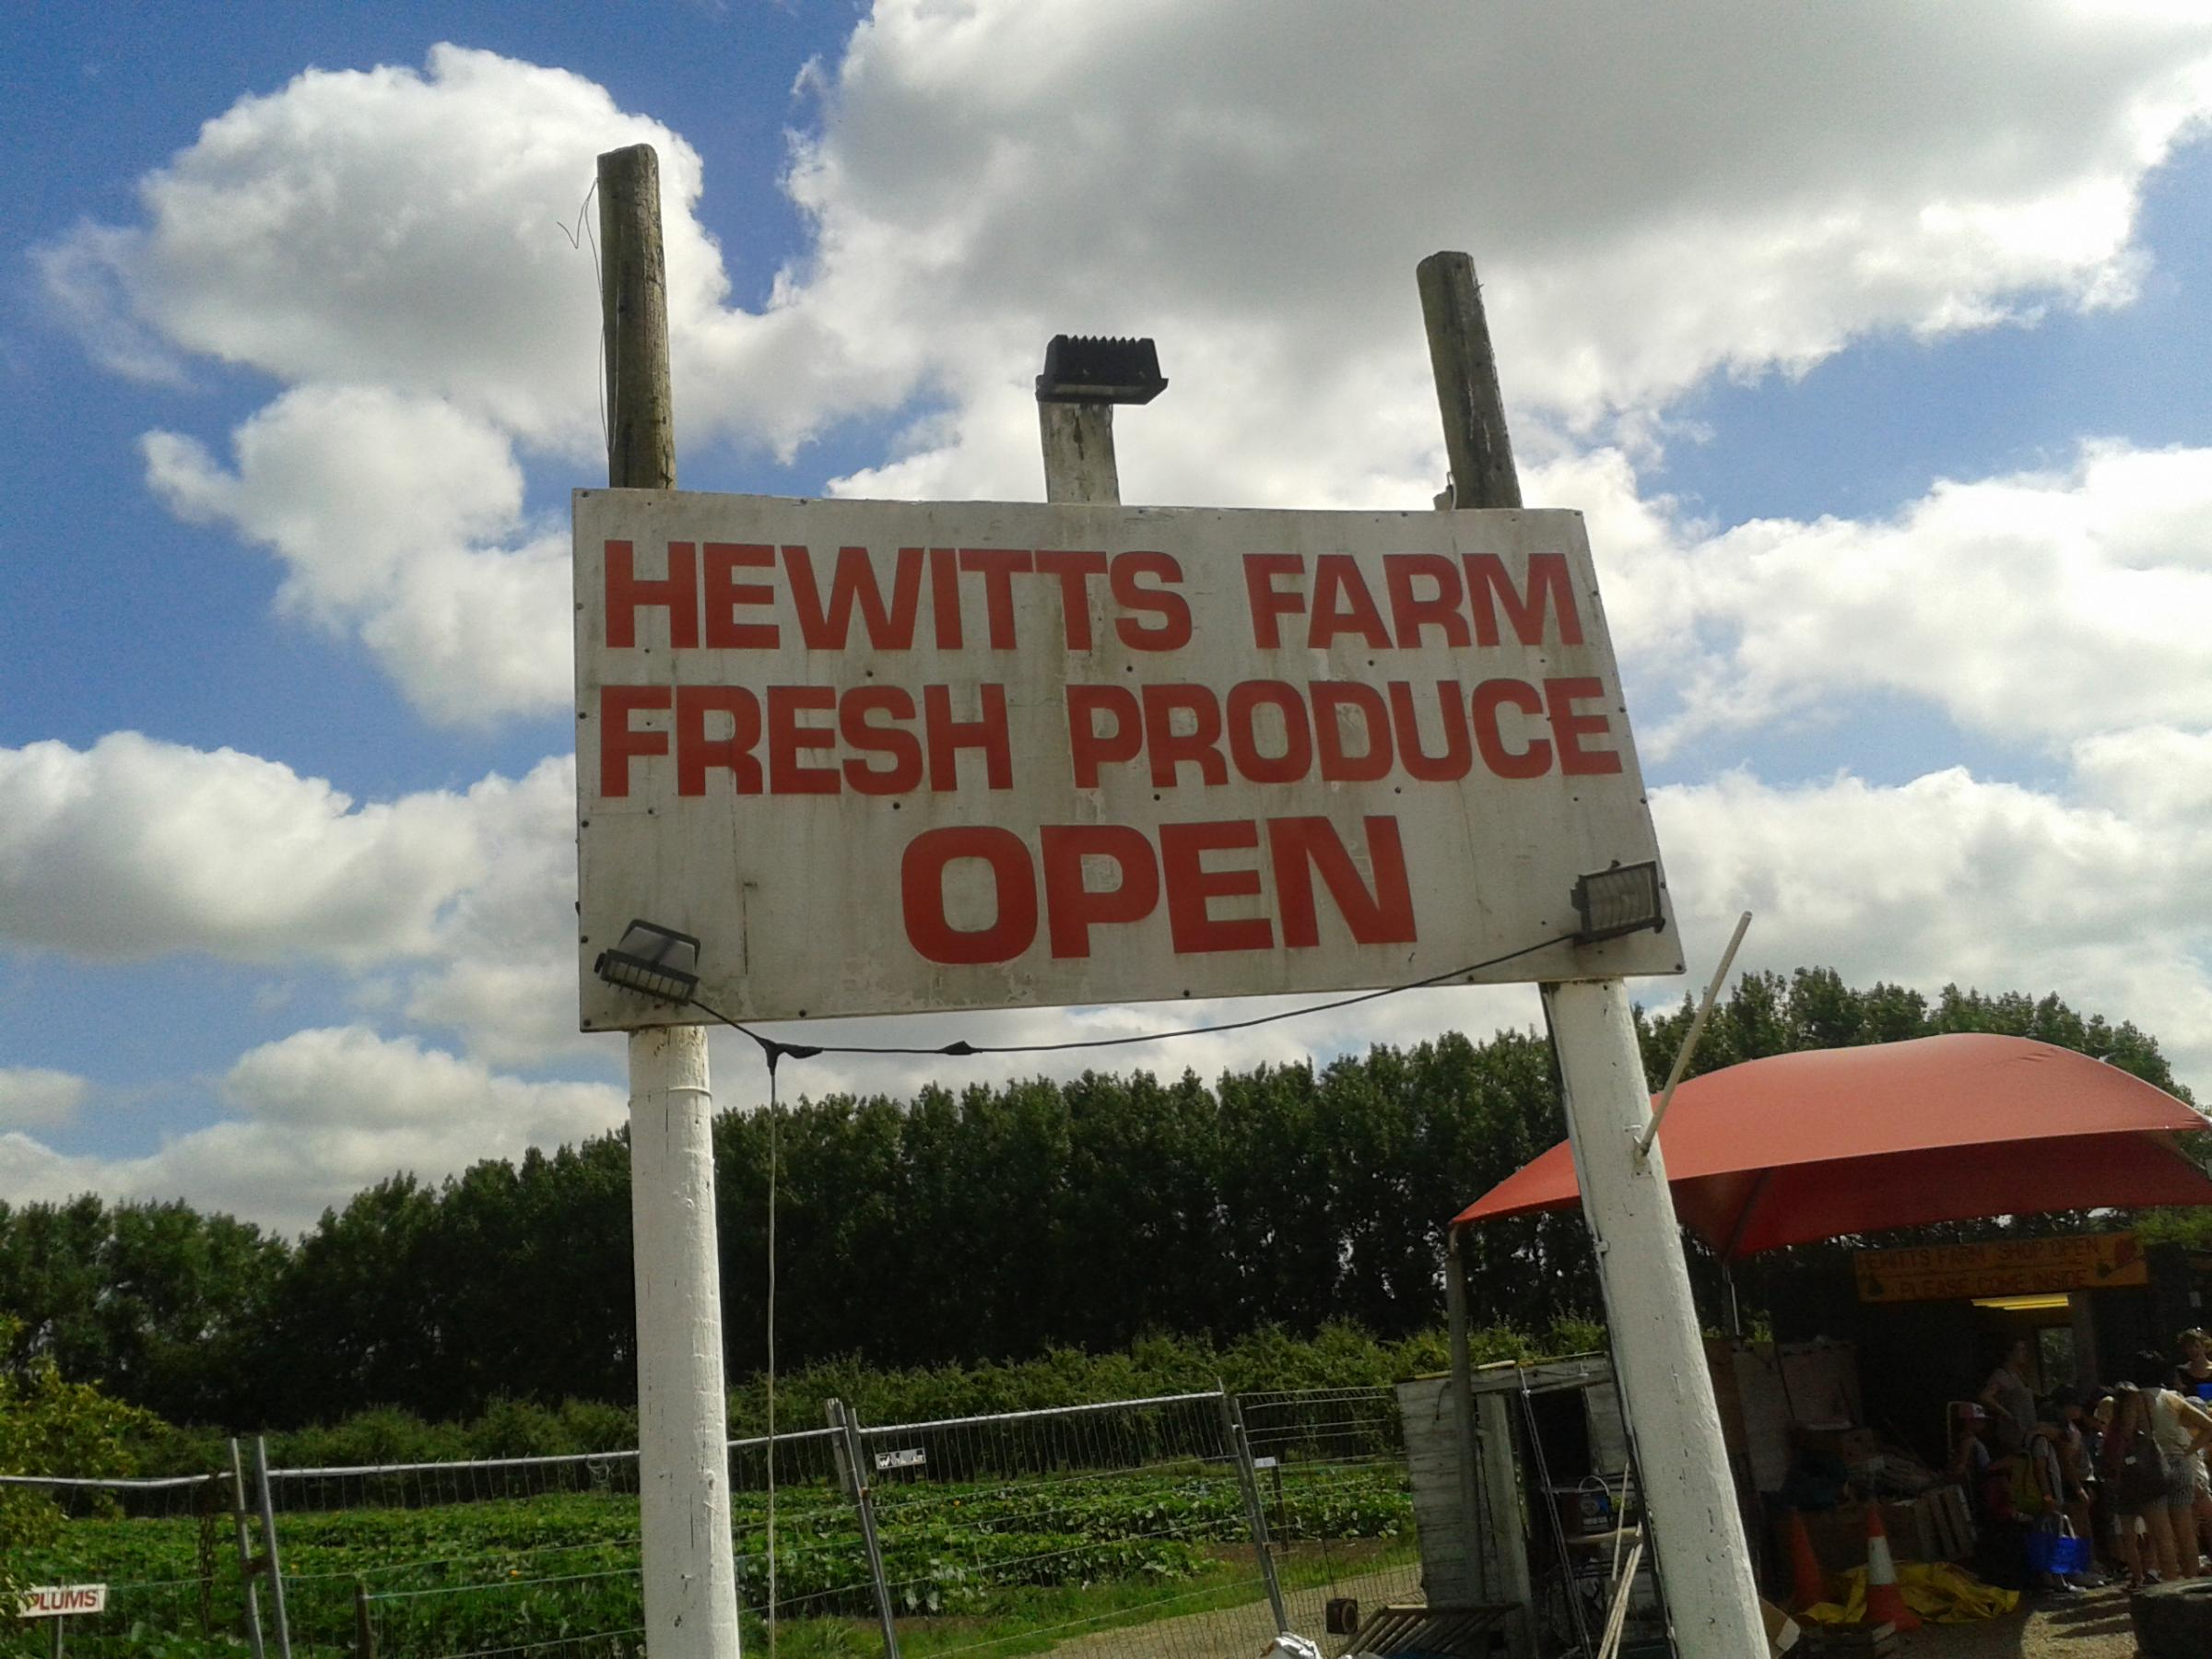 News Shopper: Hewitts Farm Chelsfield